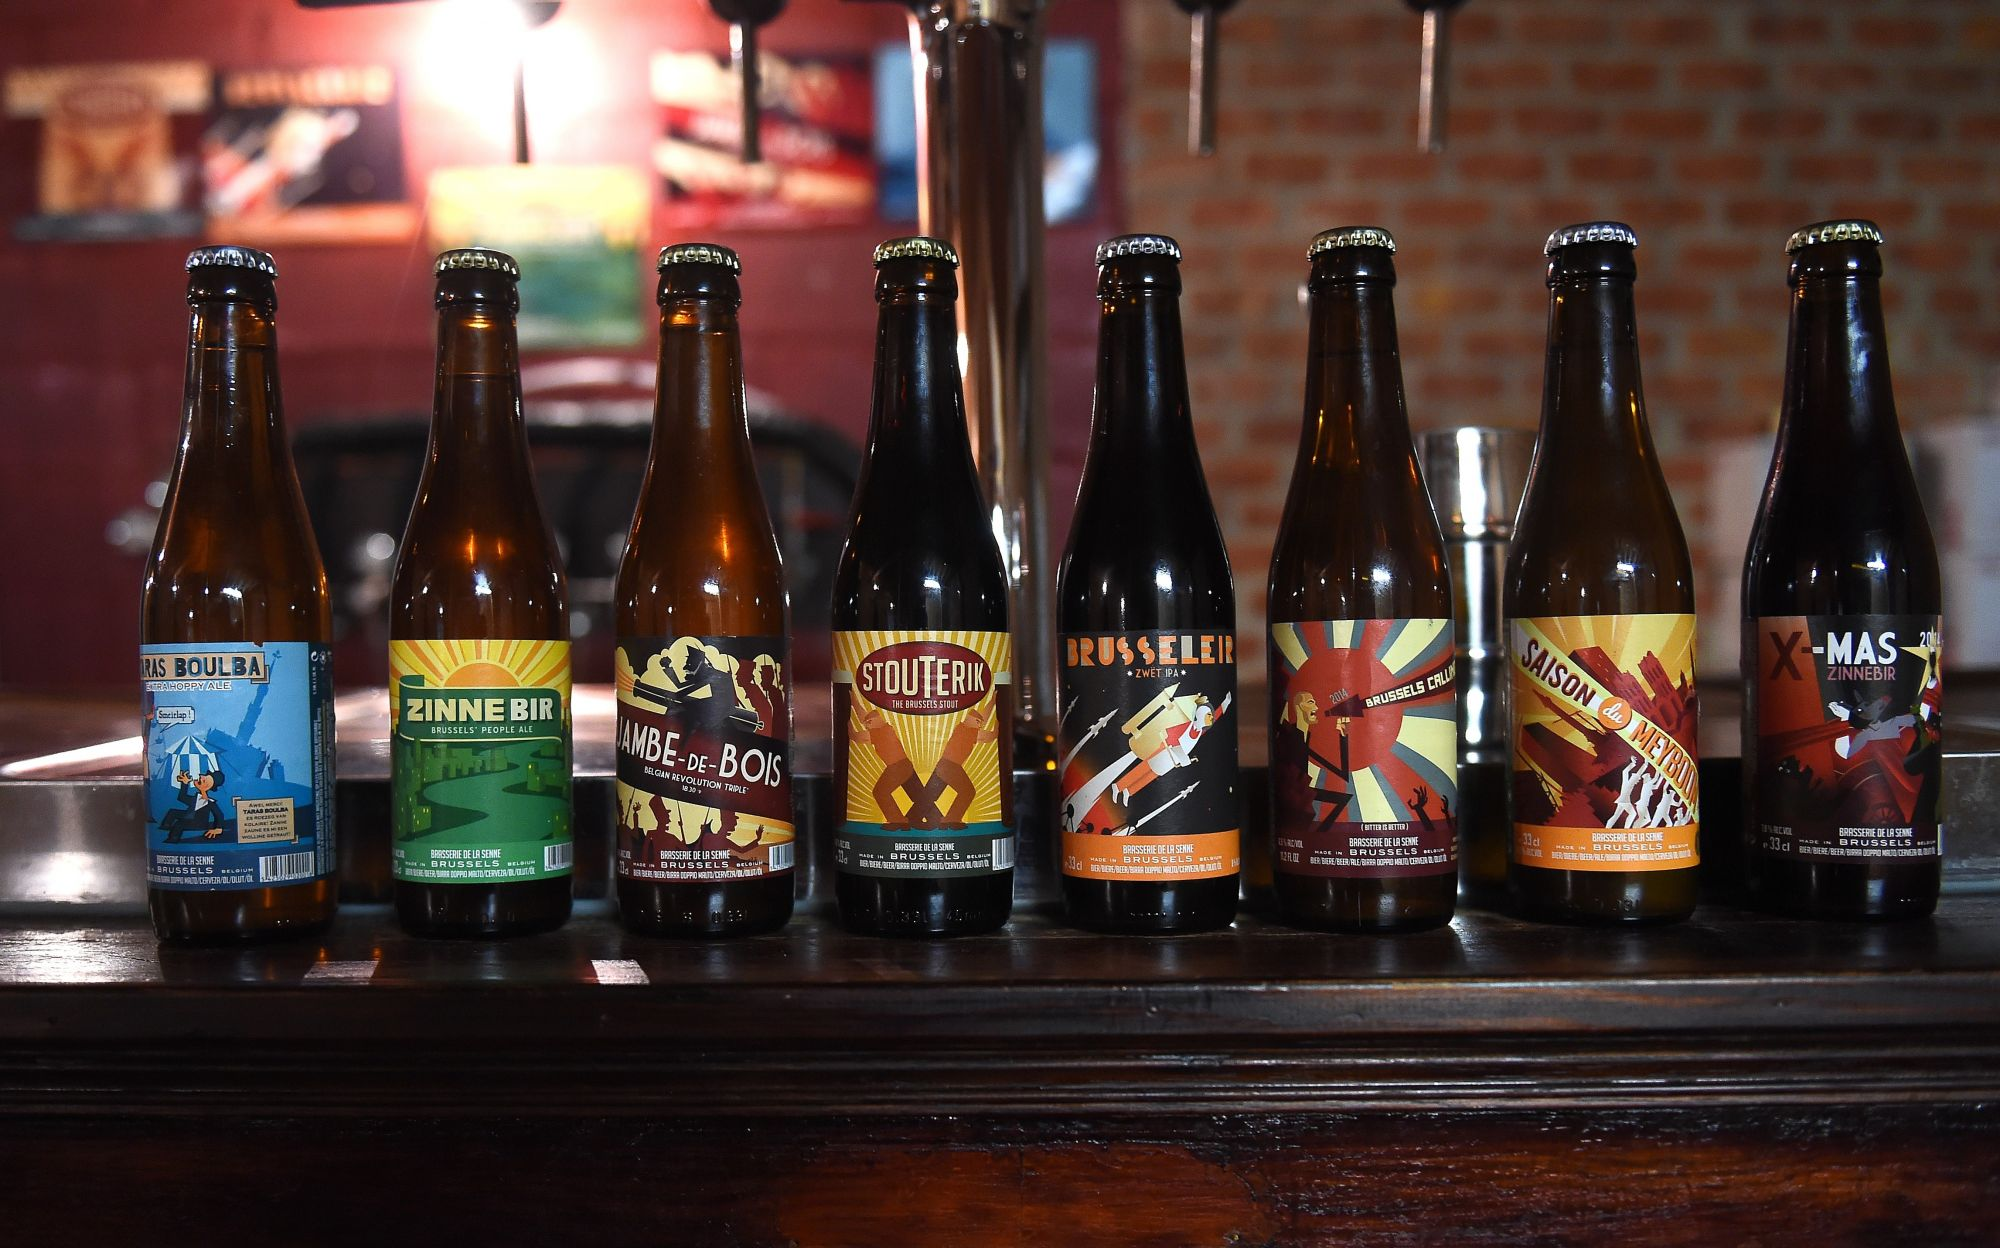 To Beer Or Not To Beer: Belgium Fears For Brewing Crown